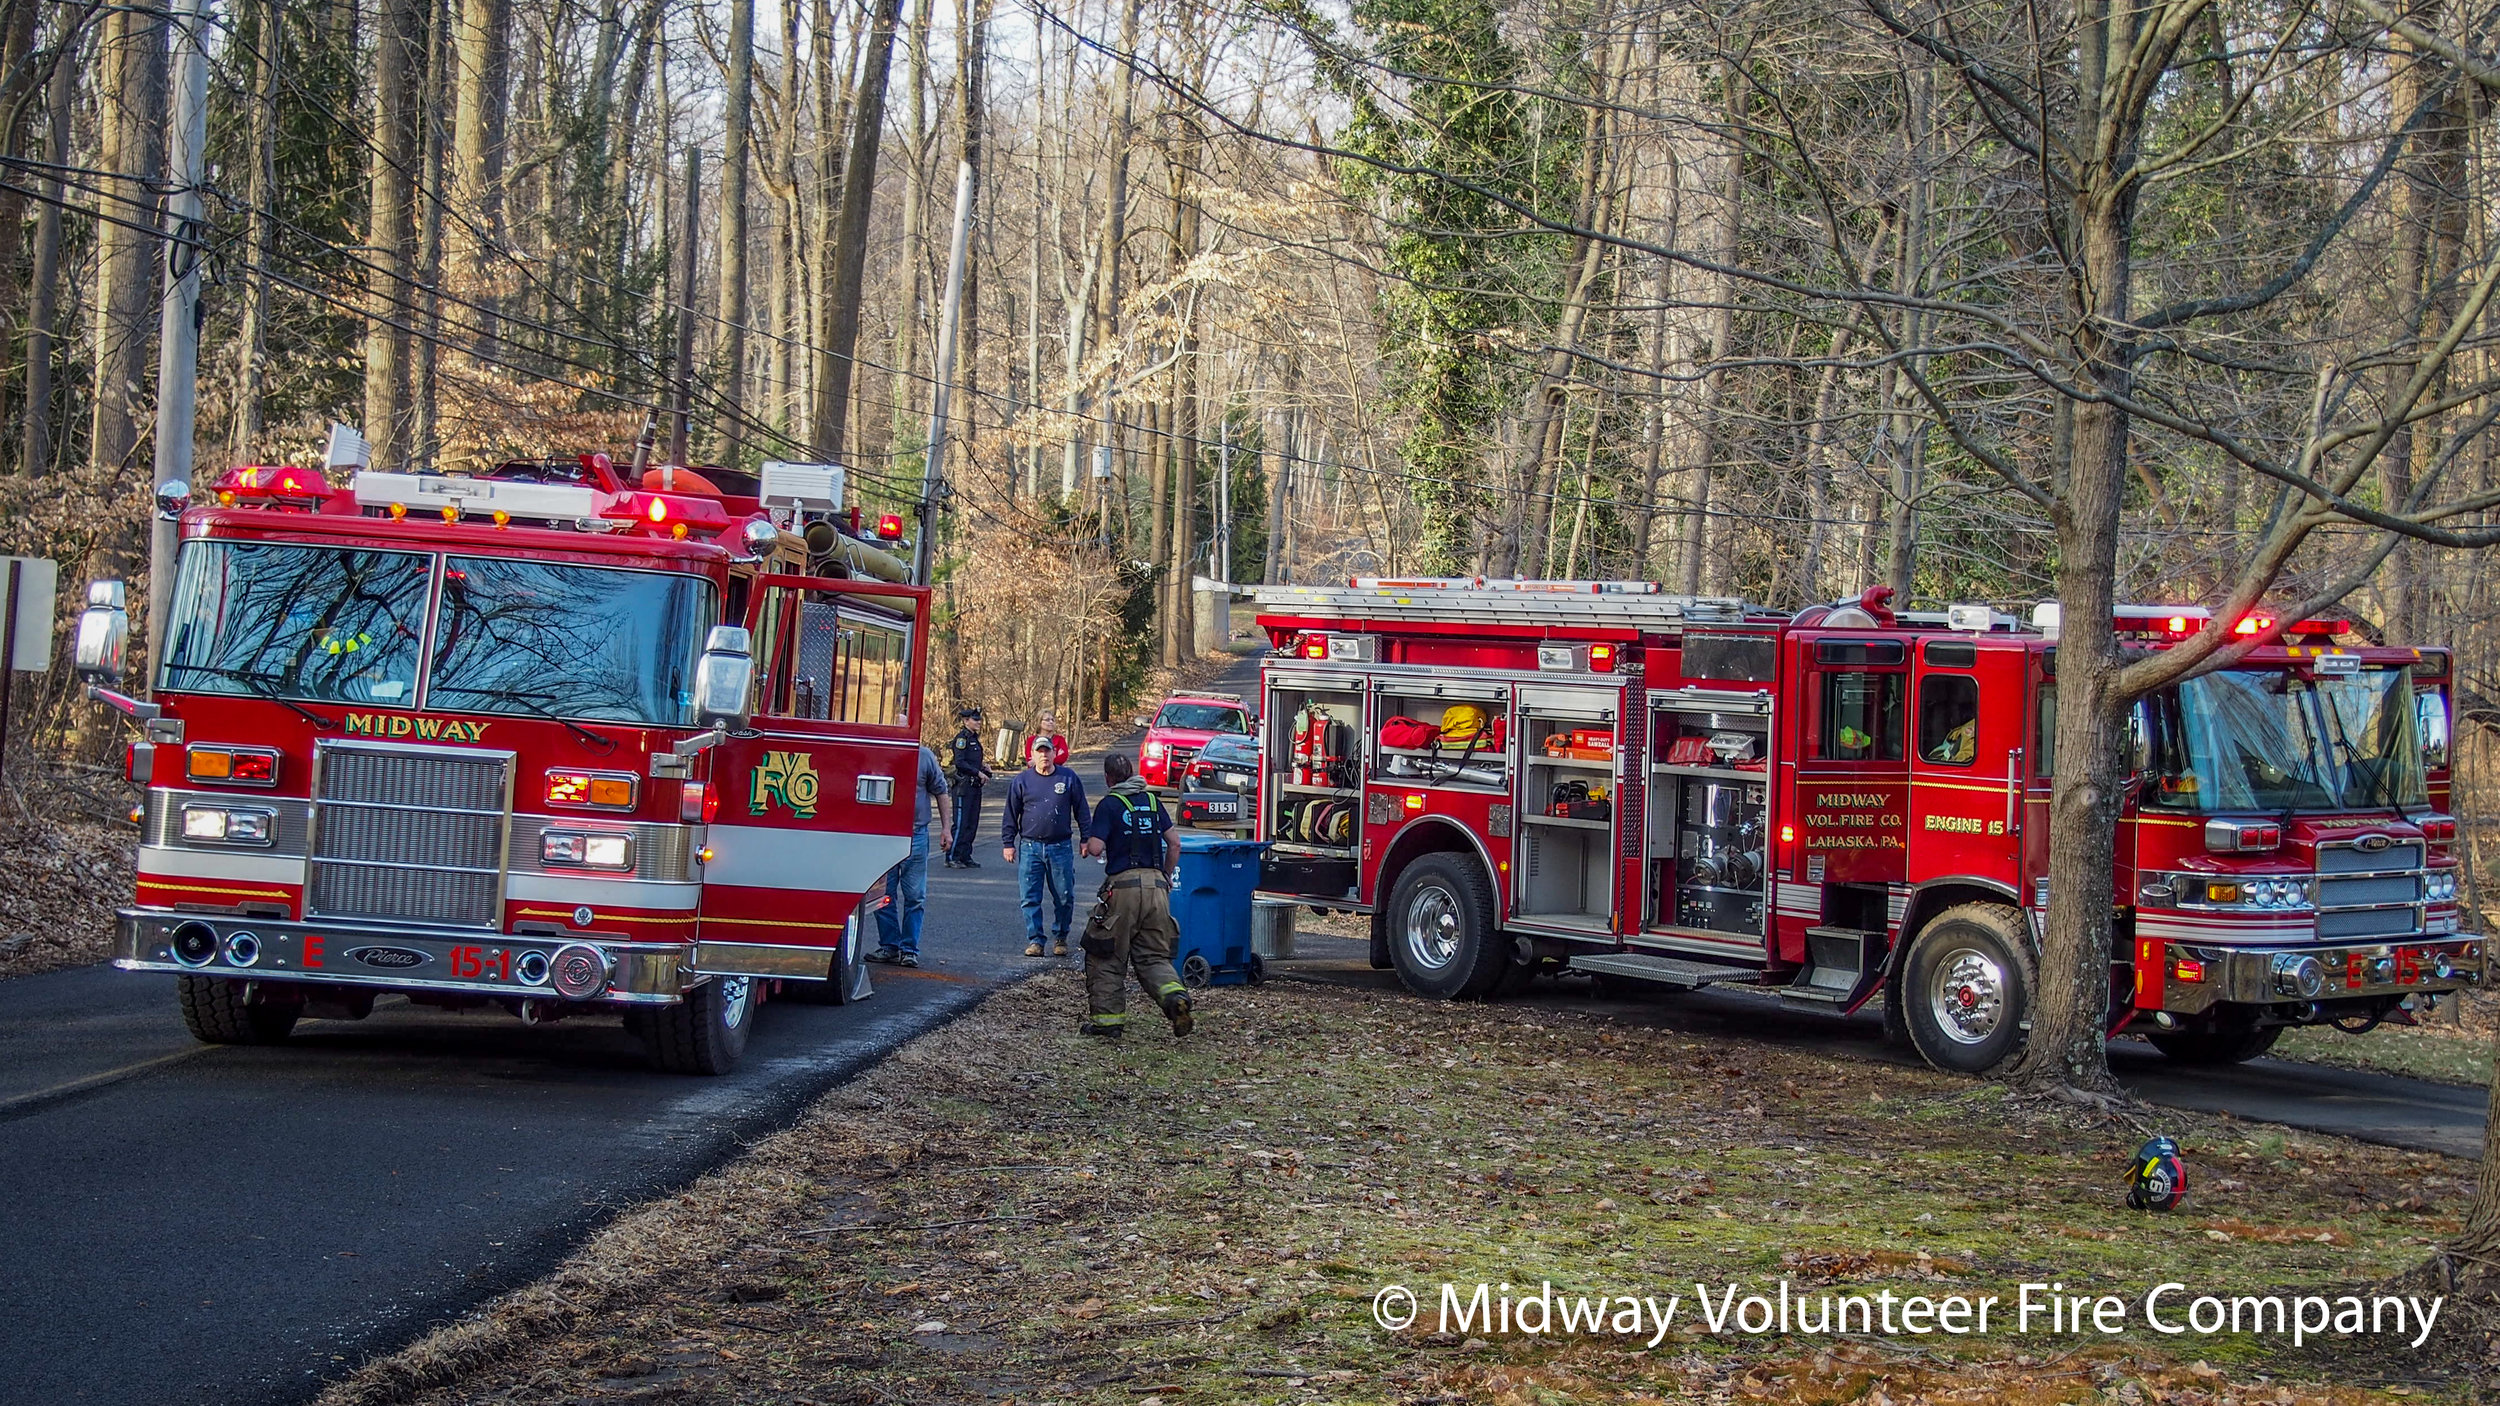 2019-02-01 - Midway Volunteer Fire Company's Engines 05, 15 and 15-1 responded to reported dwelling fire on Mill Road. Upon arrival, the fire was quickly extinguished. There was one reported minor injury that was treated at the scene by Central Bucks EMS.